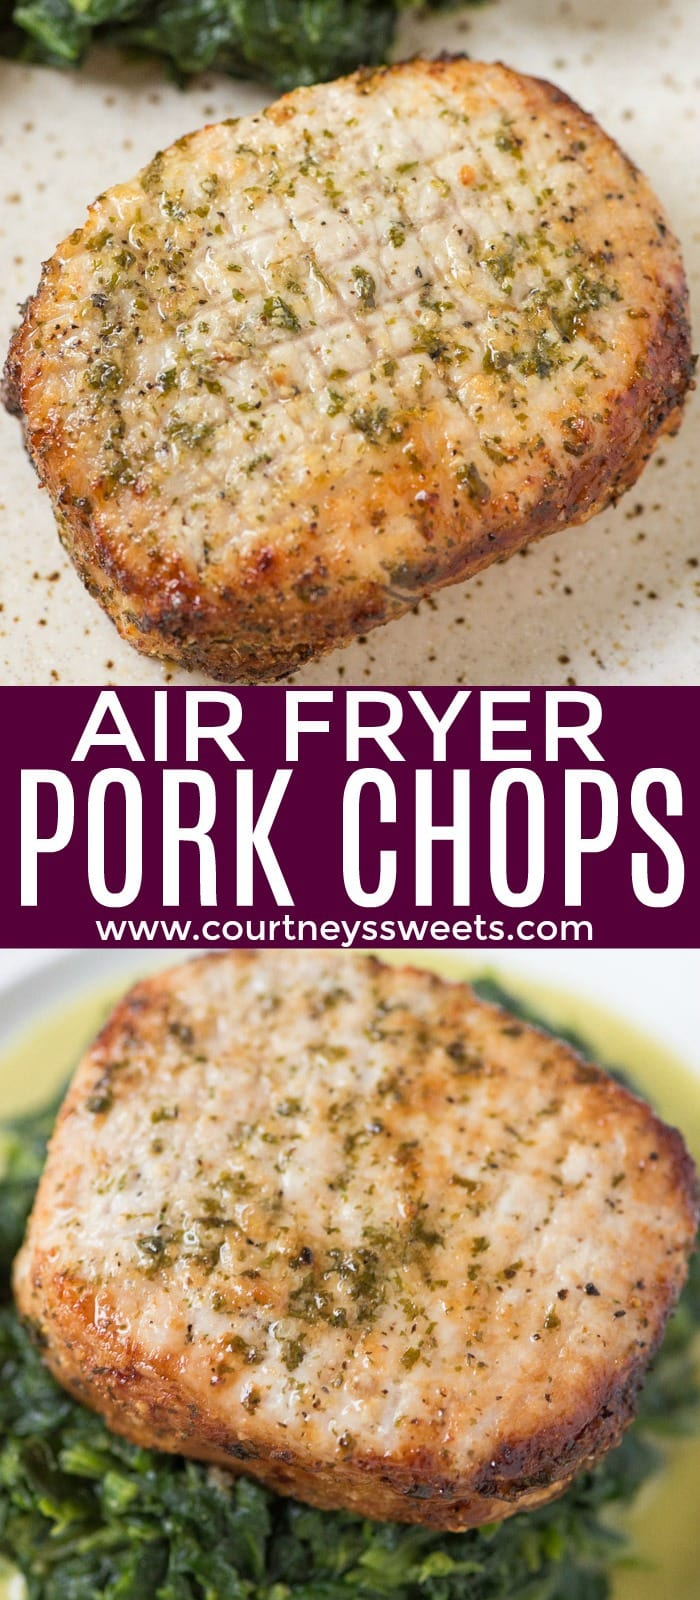 Air Fryer Pork Chops that are so juicy you'll think they came right off the grill! The pork chop seasoning is so good you can use it on any cut of meat.